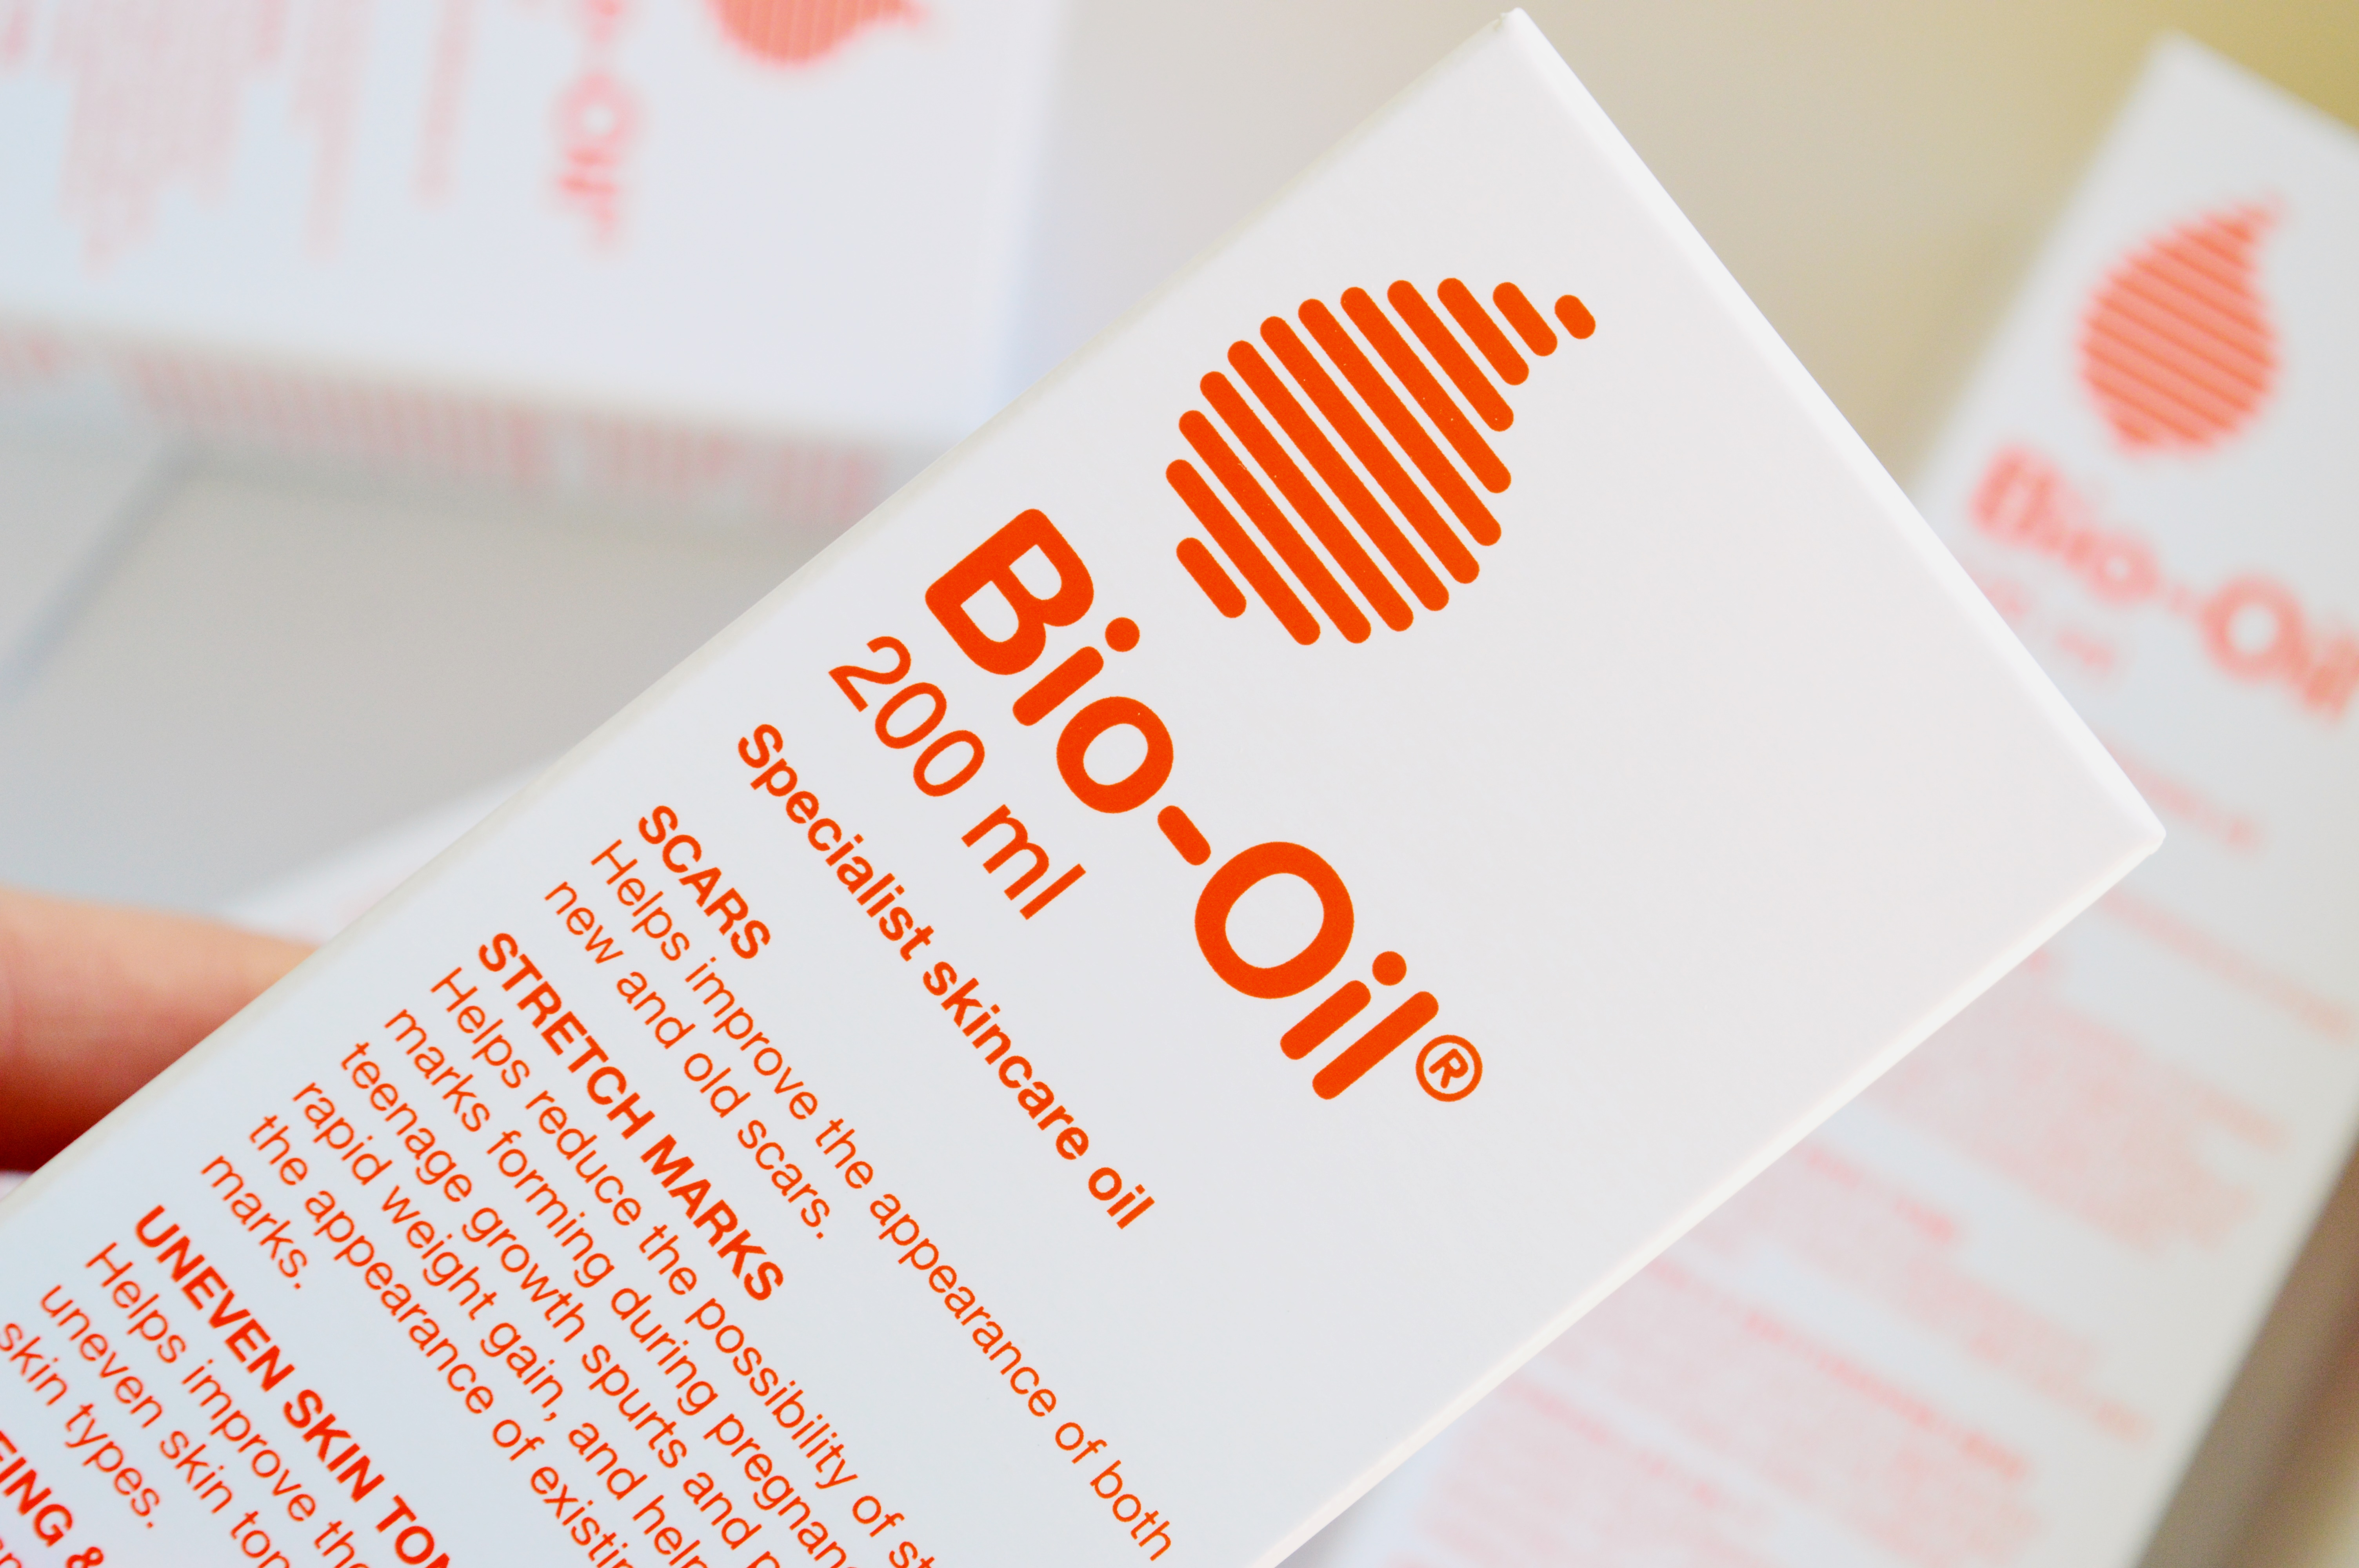 Bio-Oil has turned 30 and reveals new packaging & baby sized bottle! {HERE'S & THERE'S}